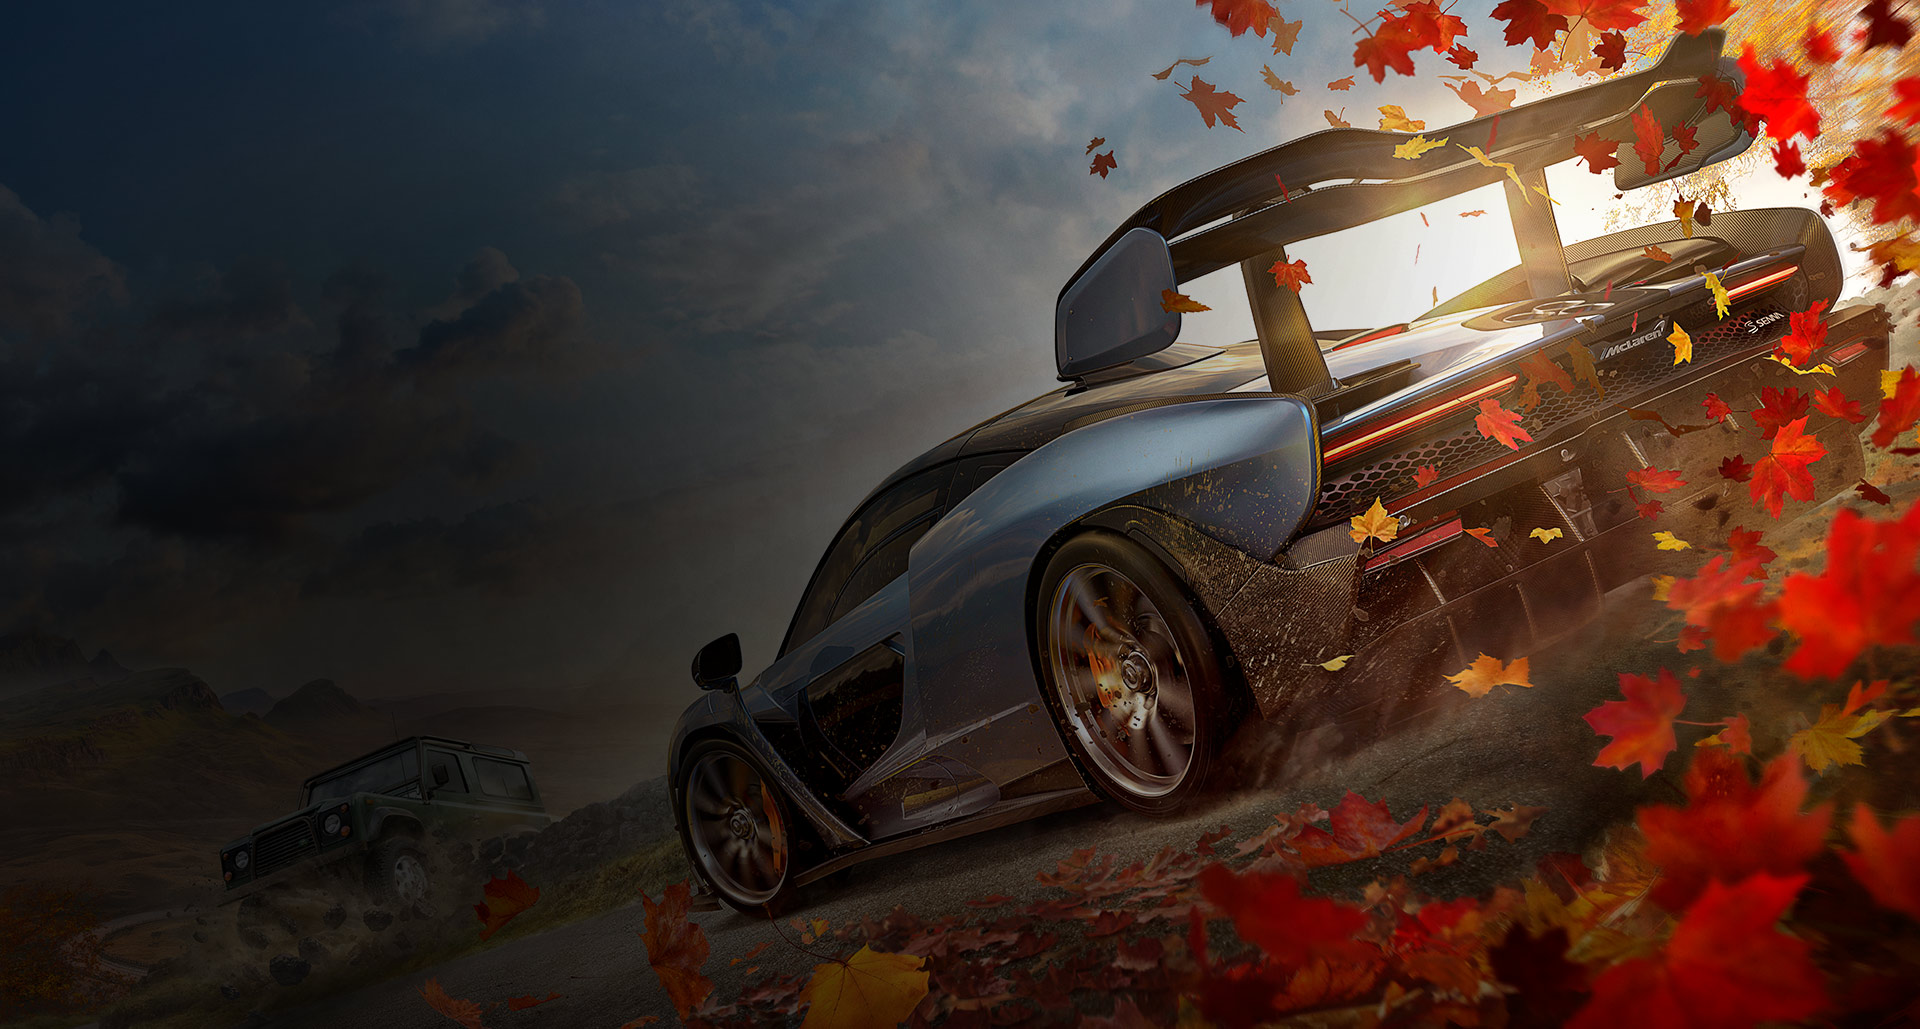 Back view of Mclaren Senna in a fall background